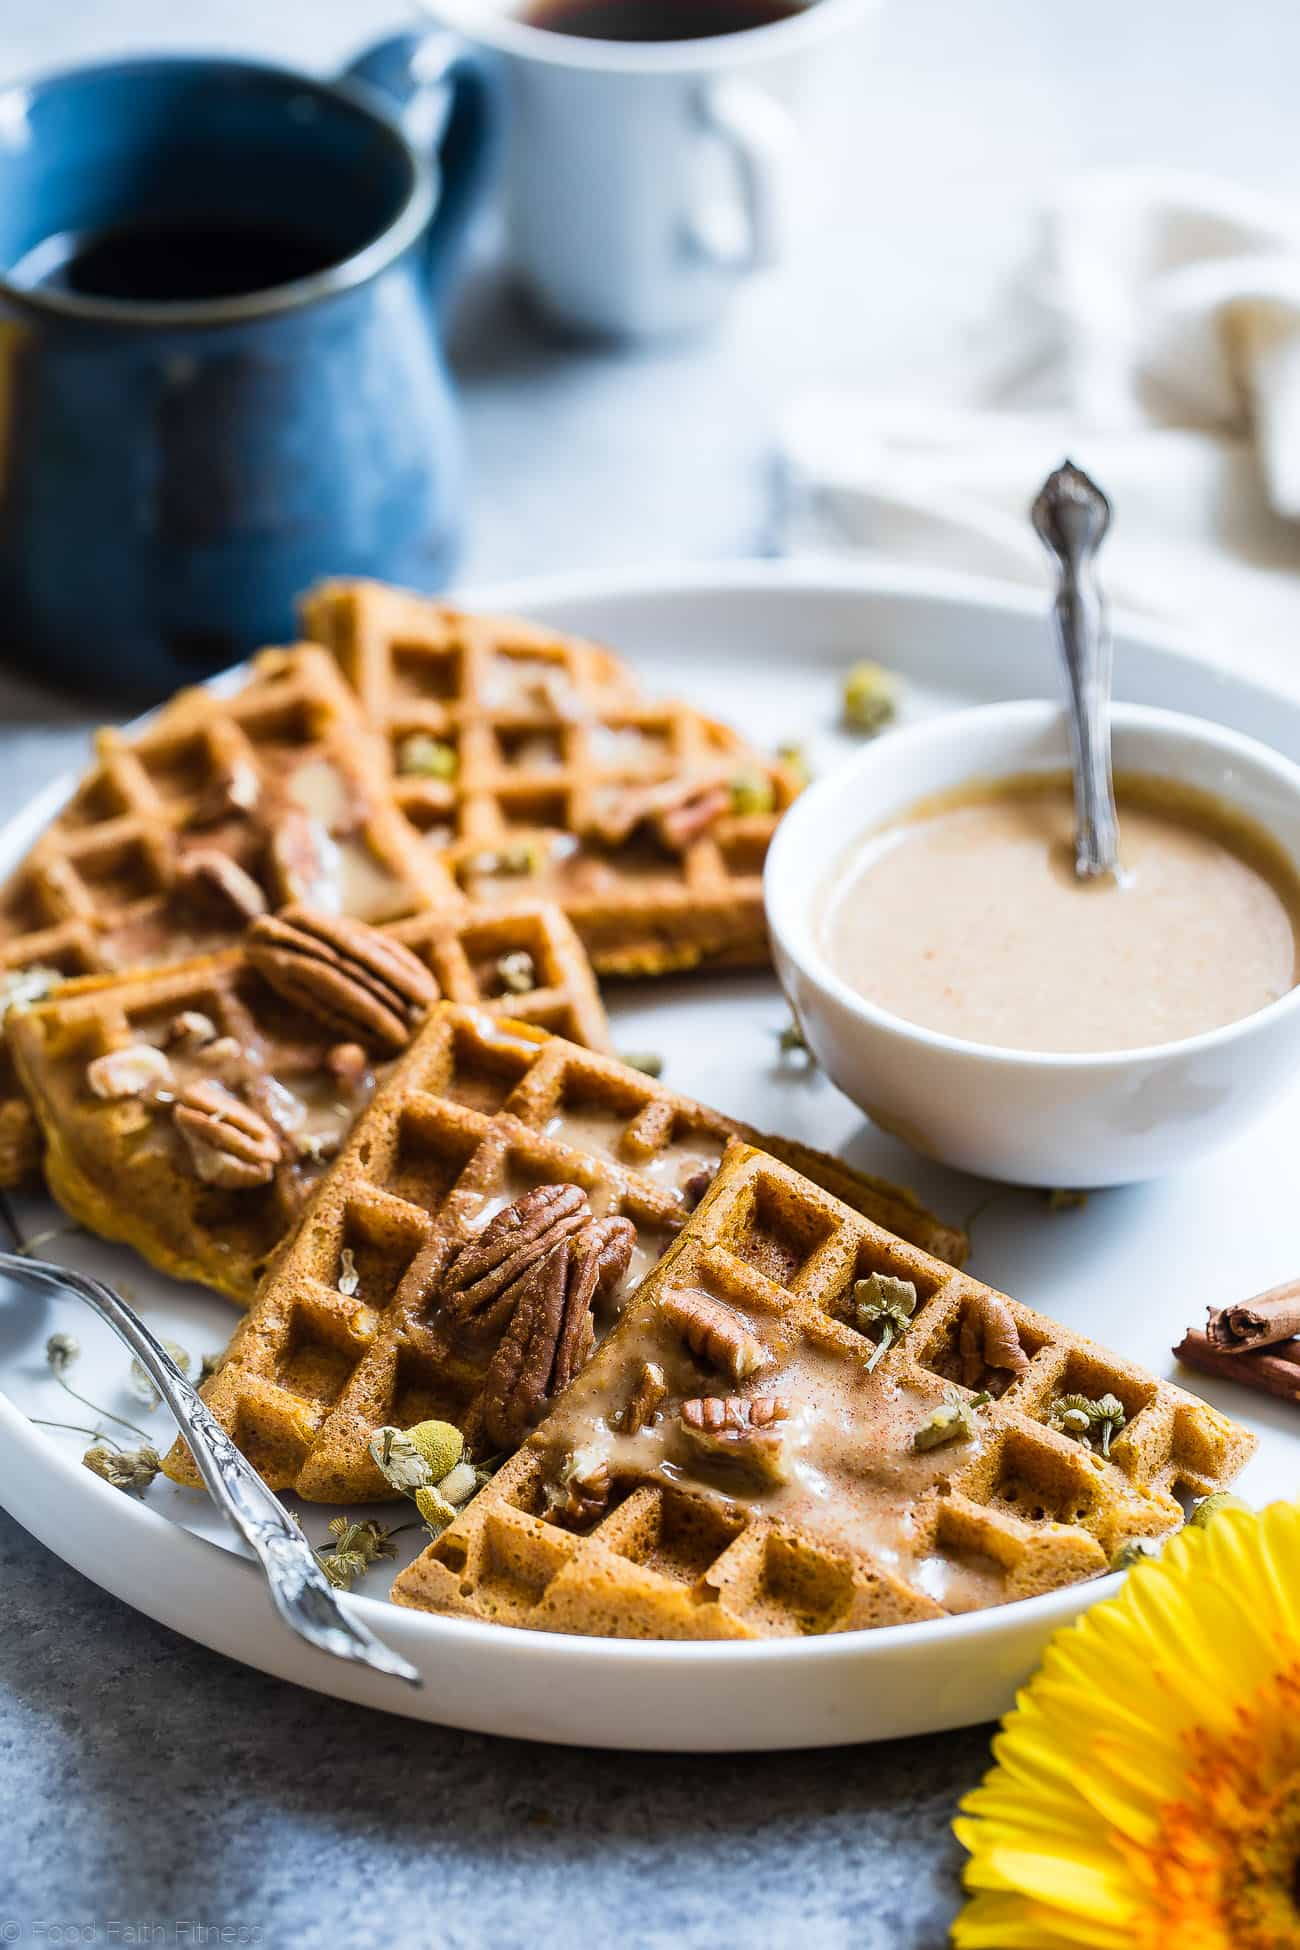 The BEST Pumpkin Spice Paleo Waffles with Pumpkin Cream Sauce - SO light, crispy and airy that you will NEVER believe that these are vegan friendly and gluten, grain, dairy AND sugar free! | Foodfaithfitness.com | @FoodFaithFit